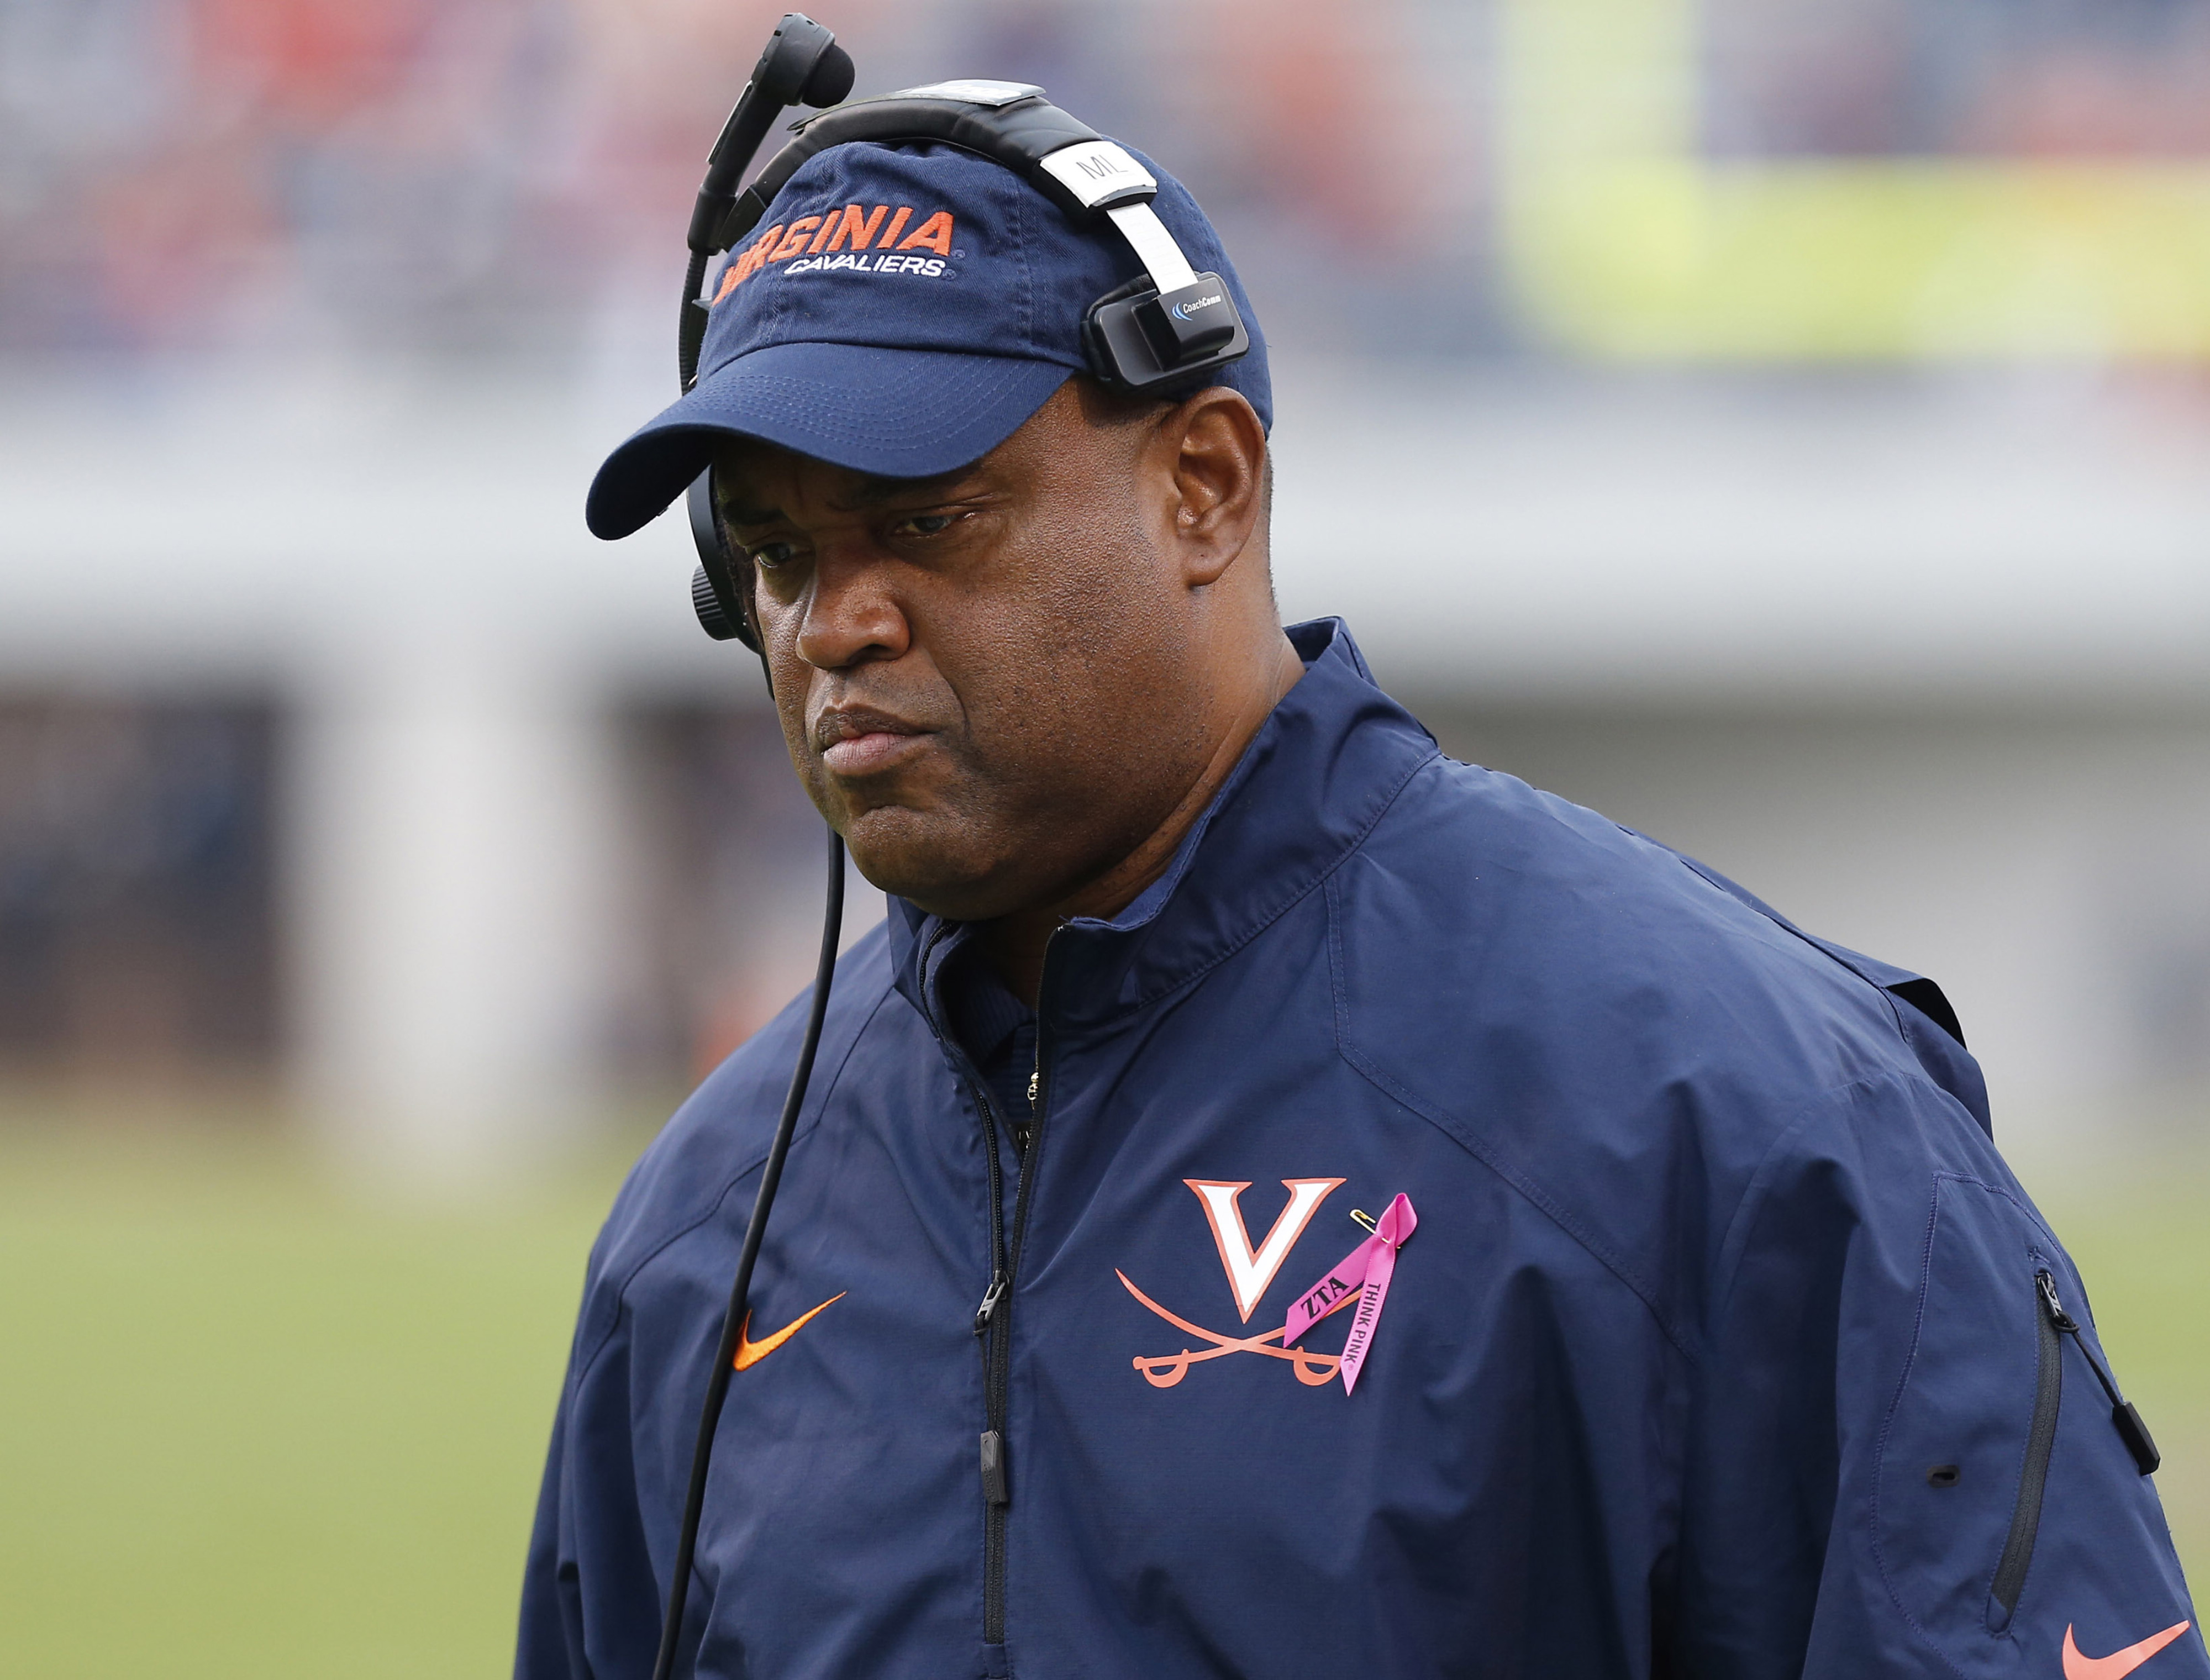 If the Cavaliers don't make a bowl game, UVA may be looking for a new football coach after this season.